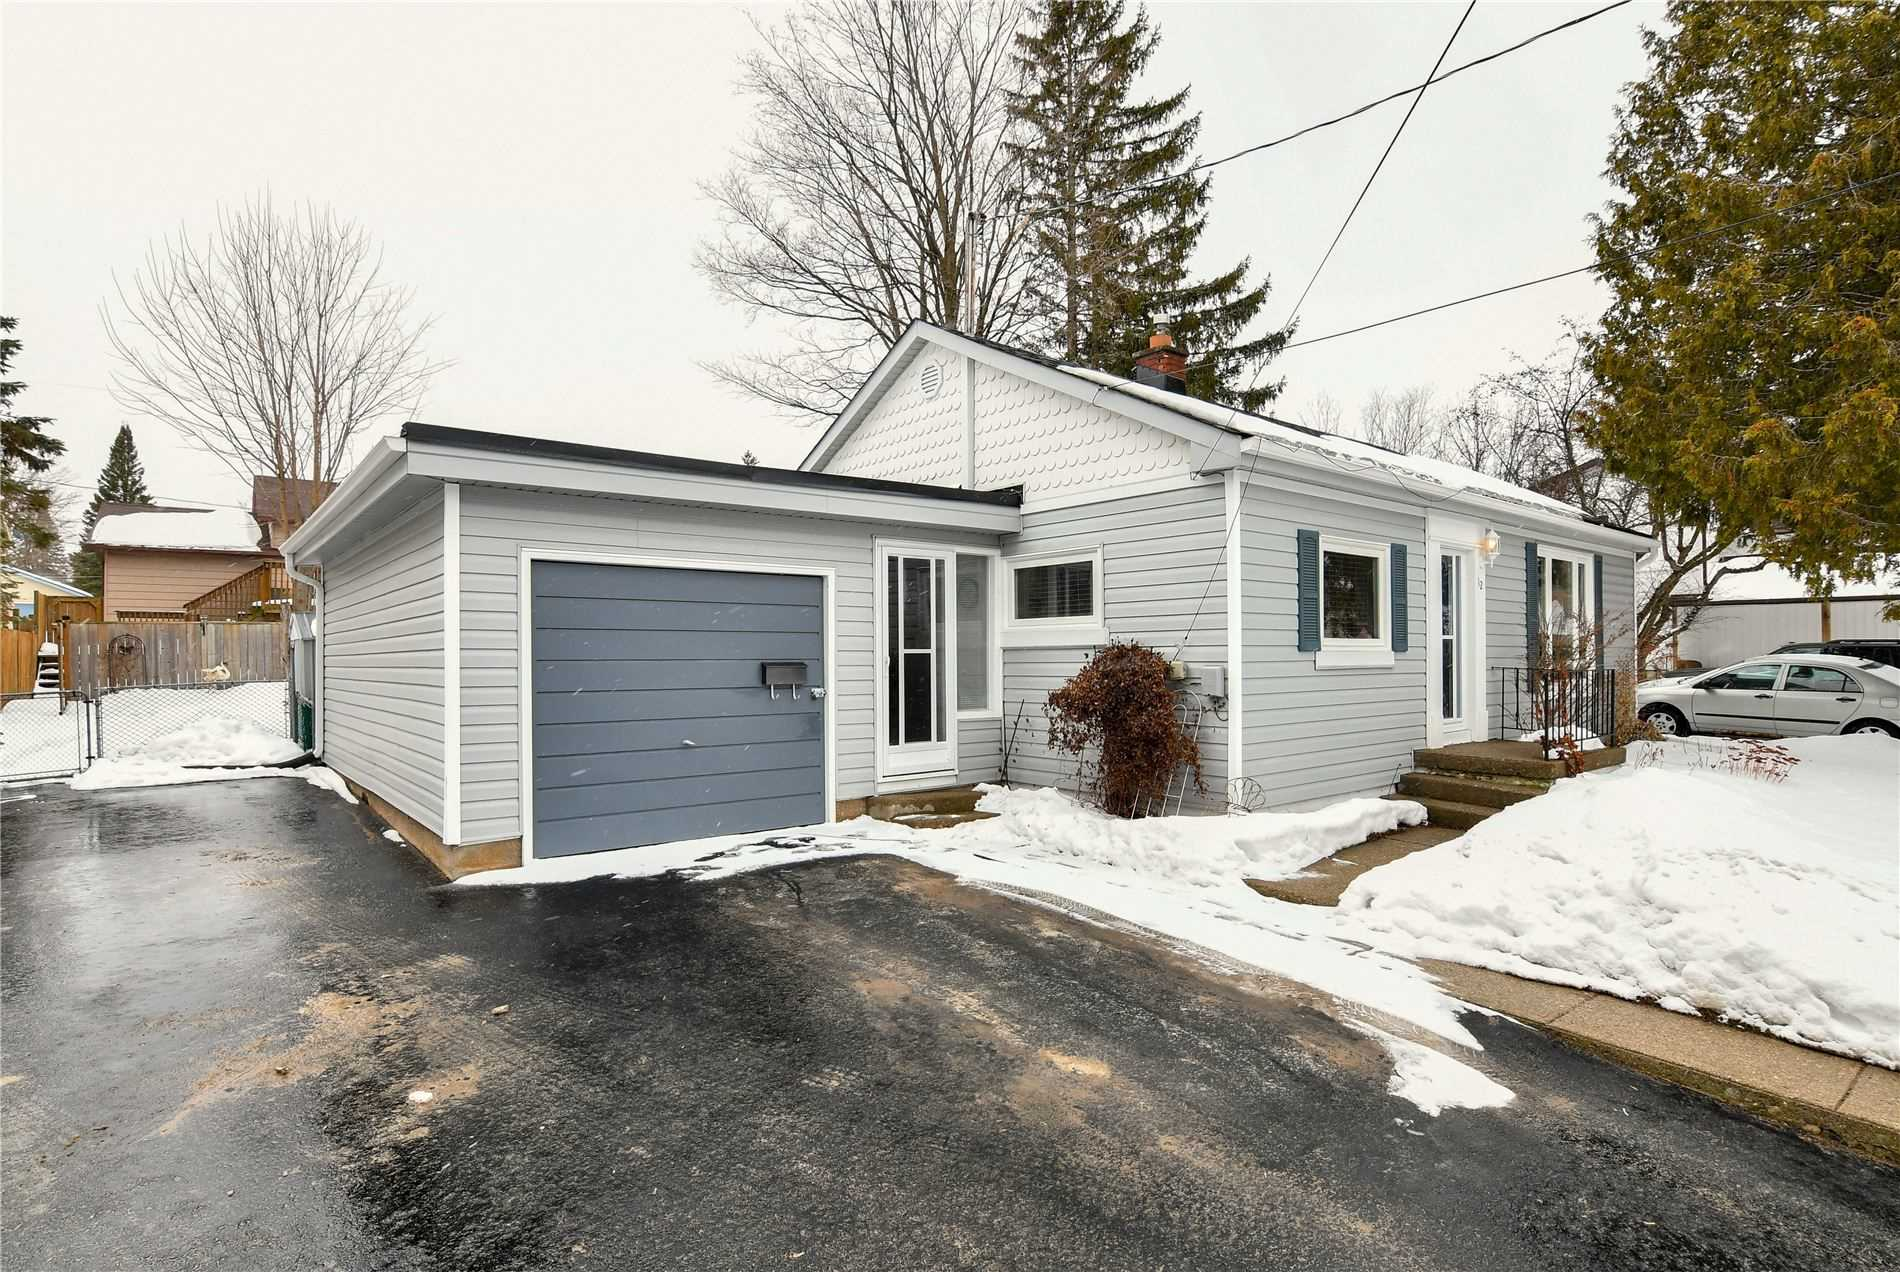 pictures of house for sale MLS: W4714368 located at 12 Margaret St, Orangeville L9W2N2